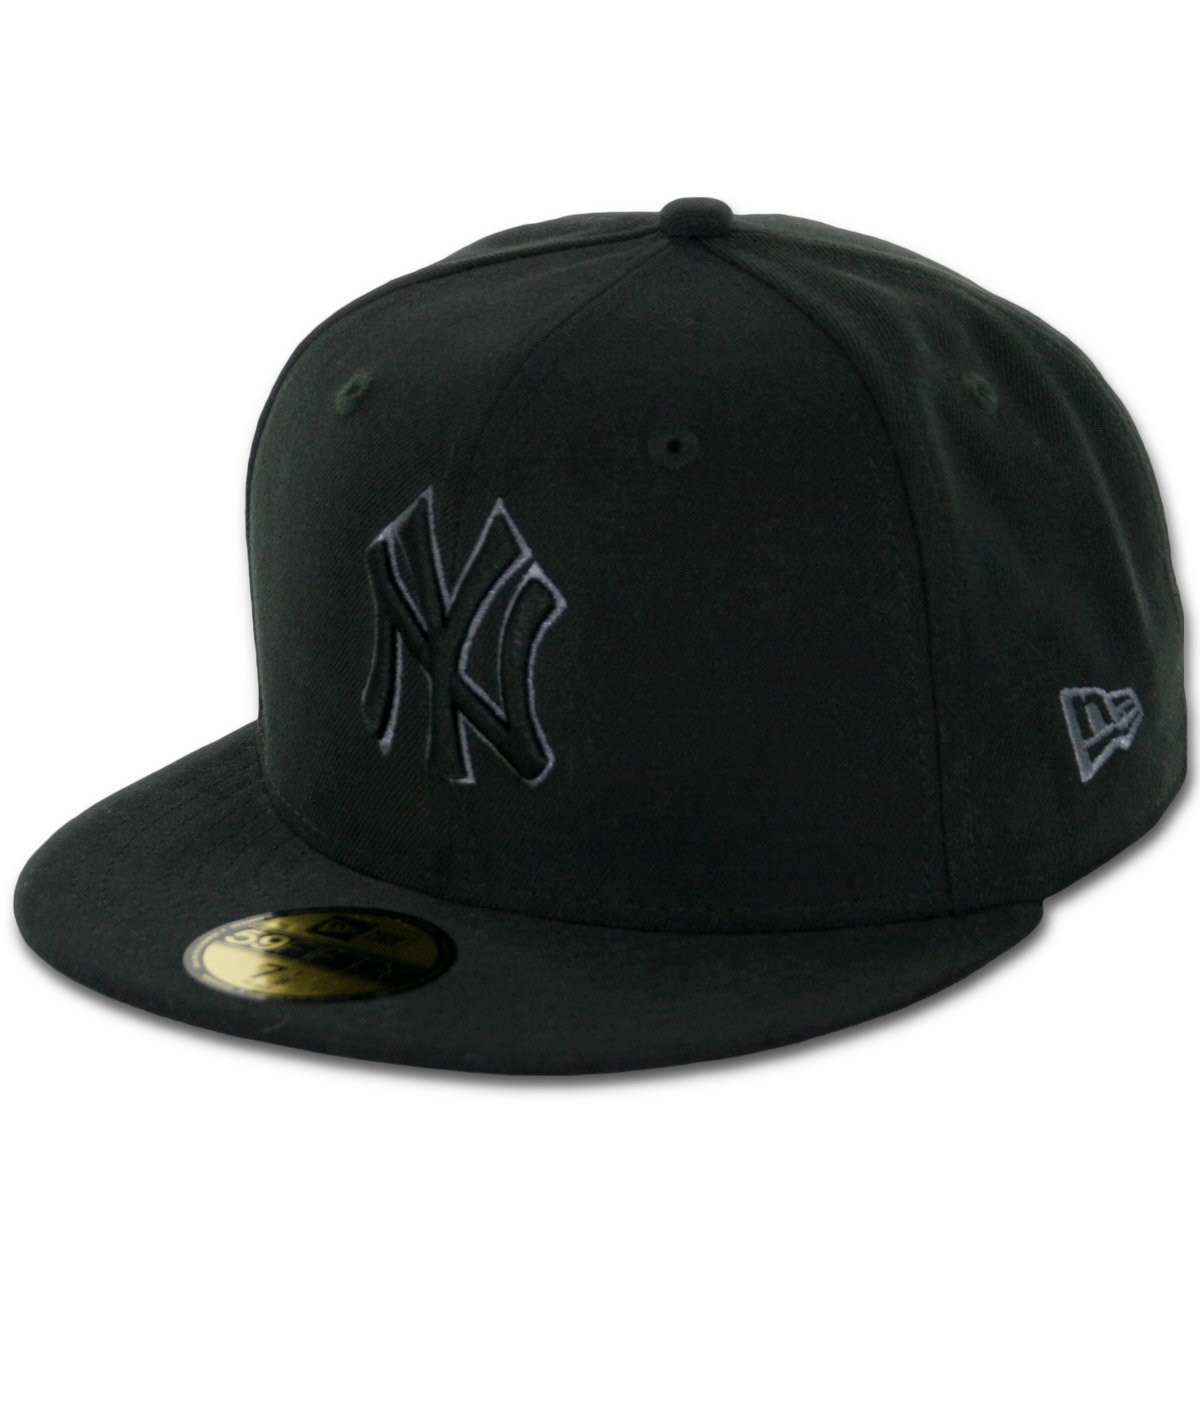 065c60e96d361e New Era 59Fifty New York Yankees Fitted Black, Black, Grey Hat ...